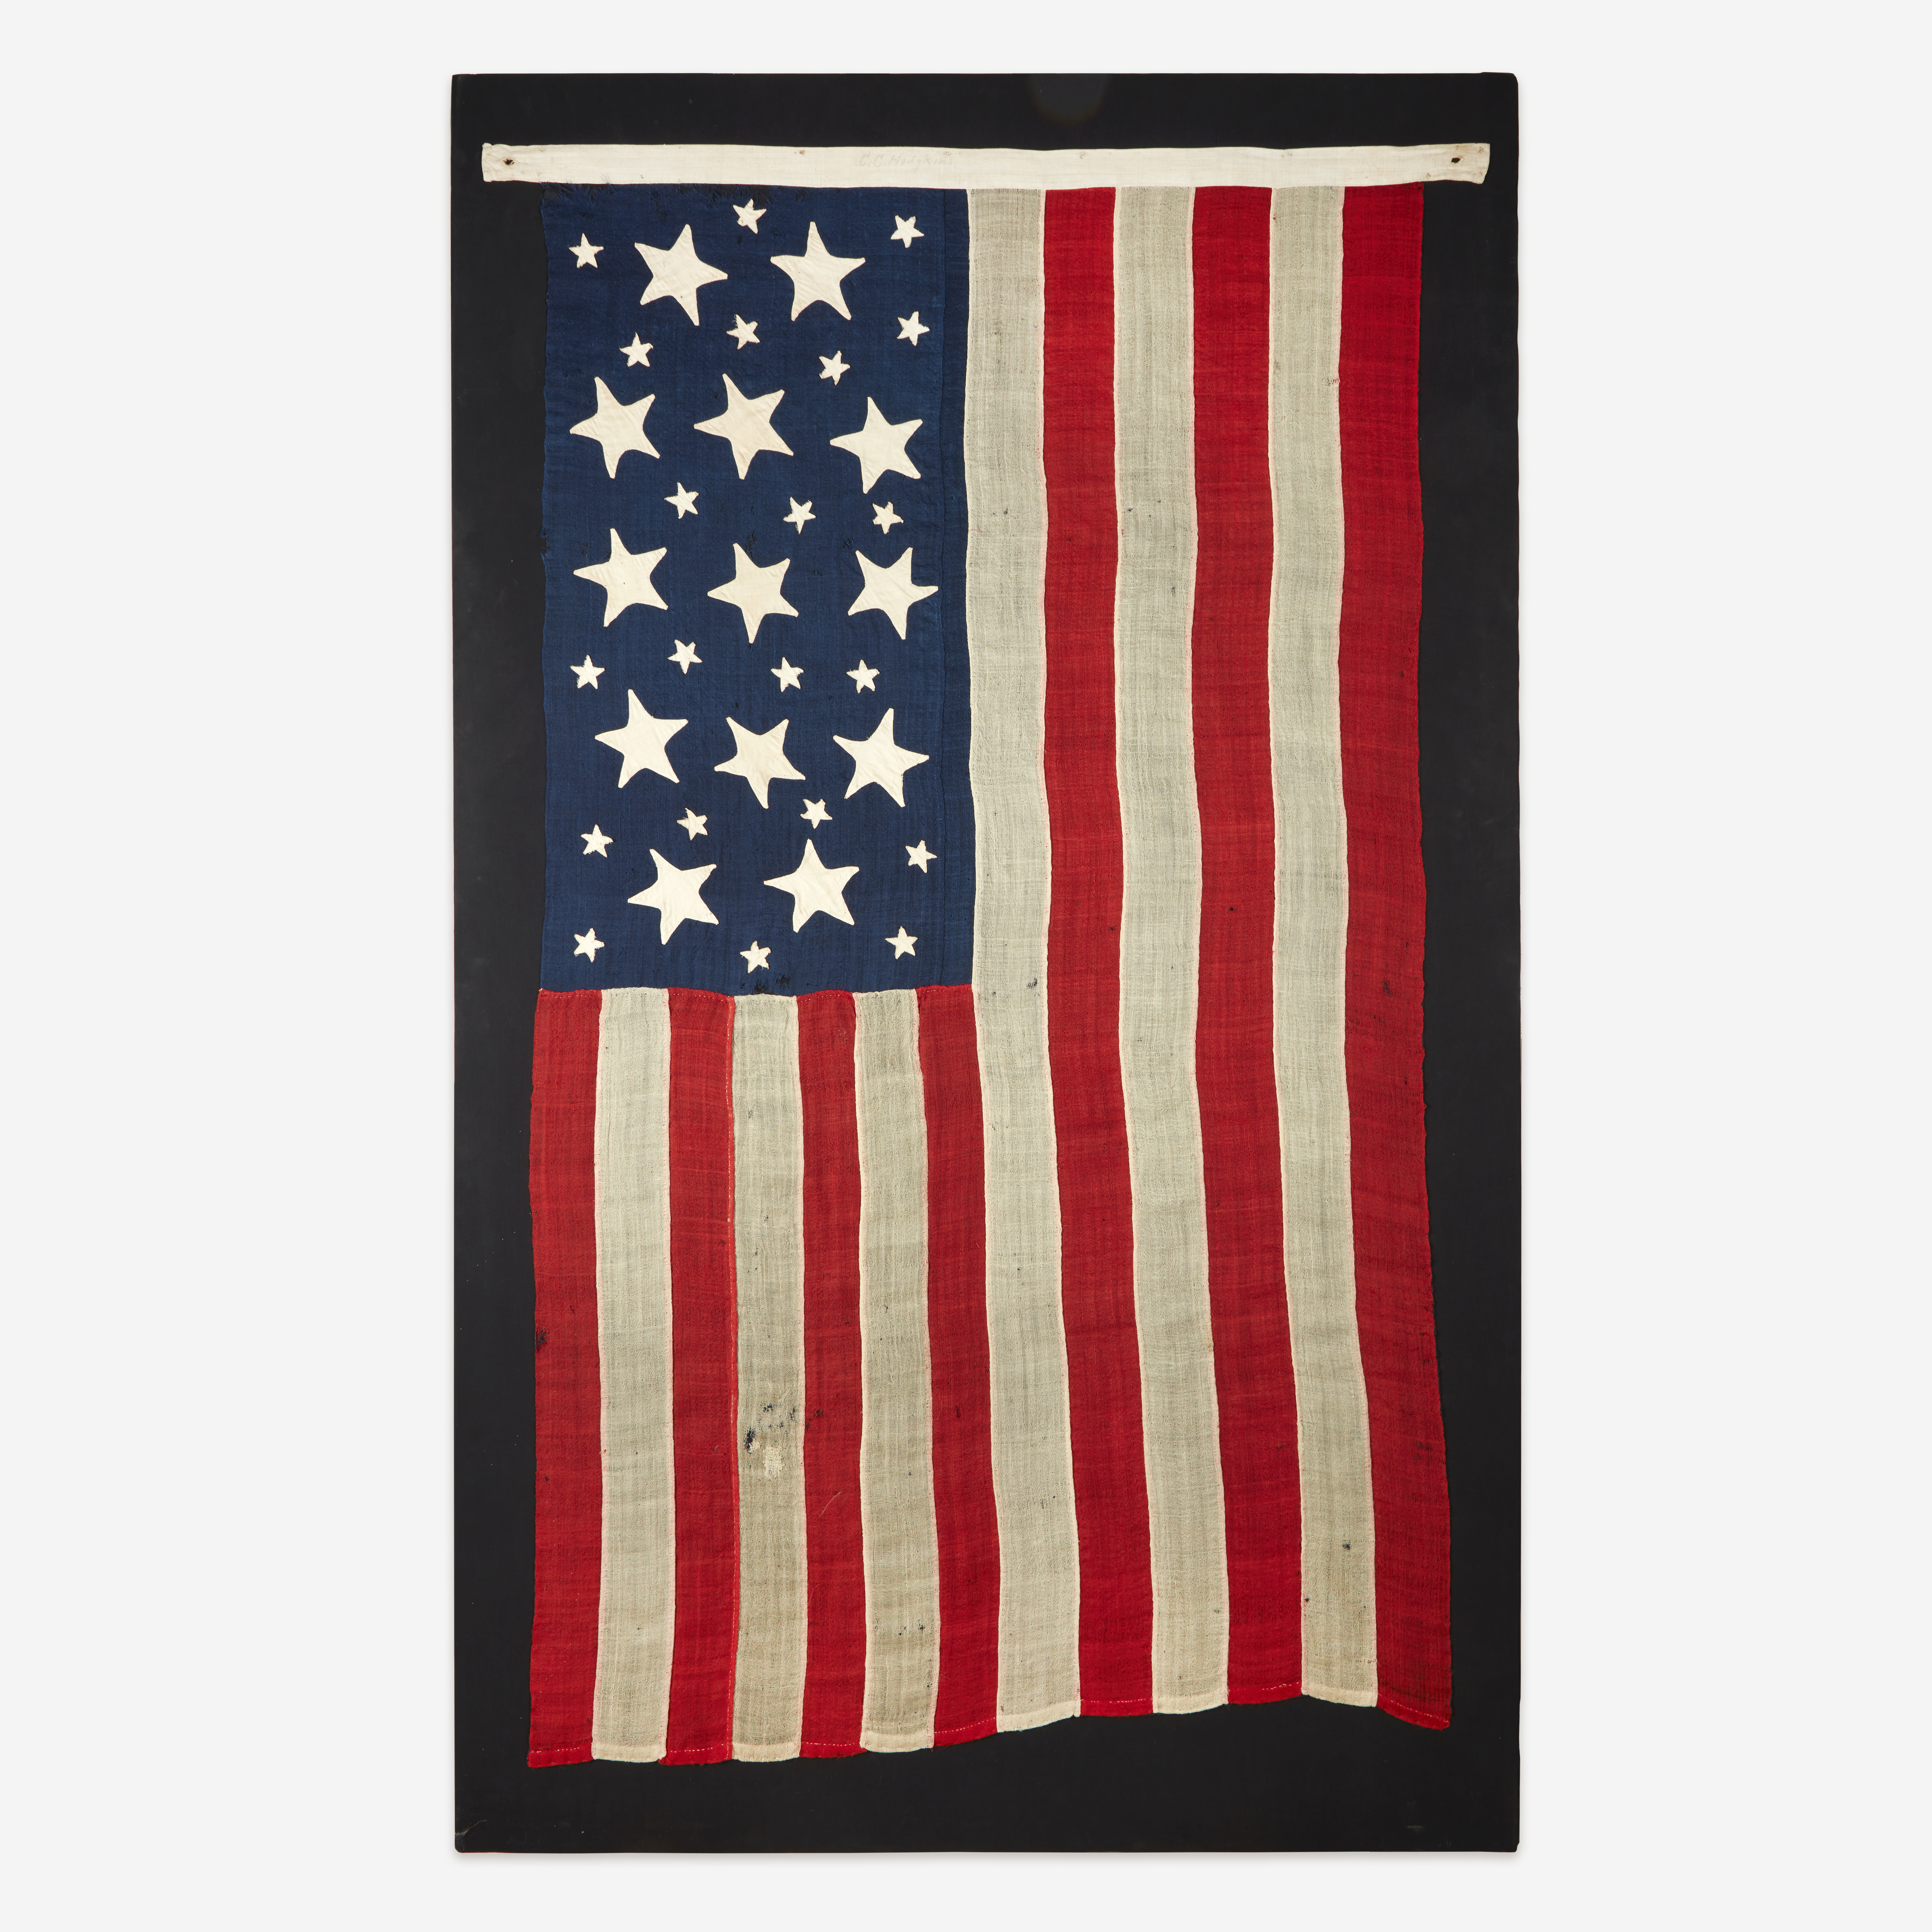 13-Star American flag with 21 scattered stars, estimated at $25,000-$50,000